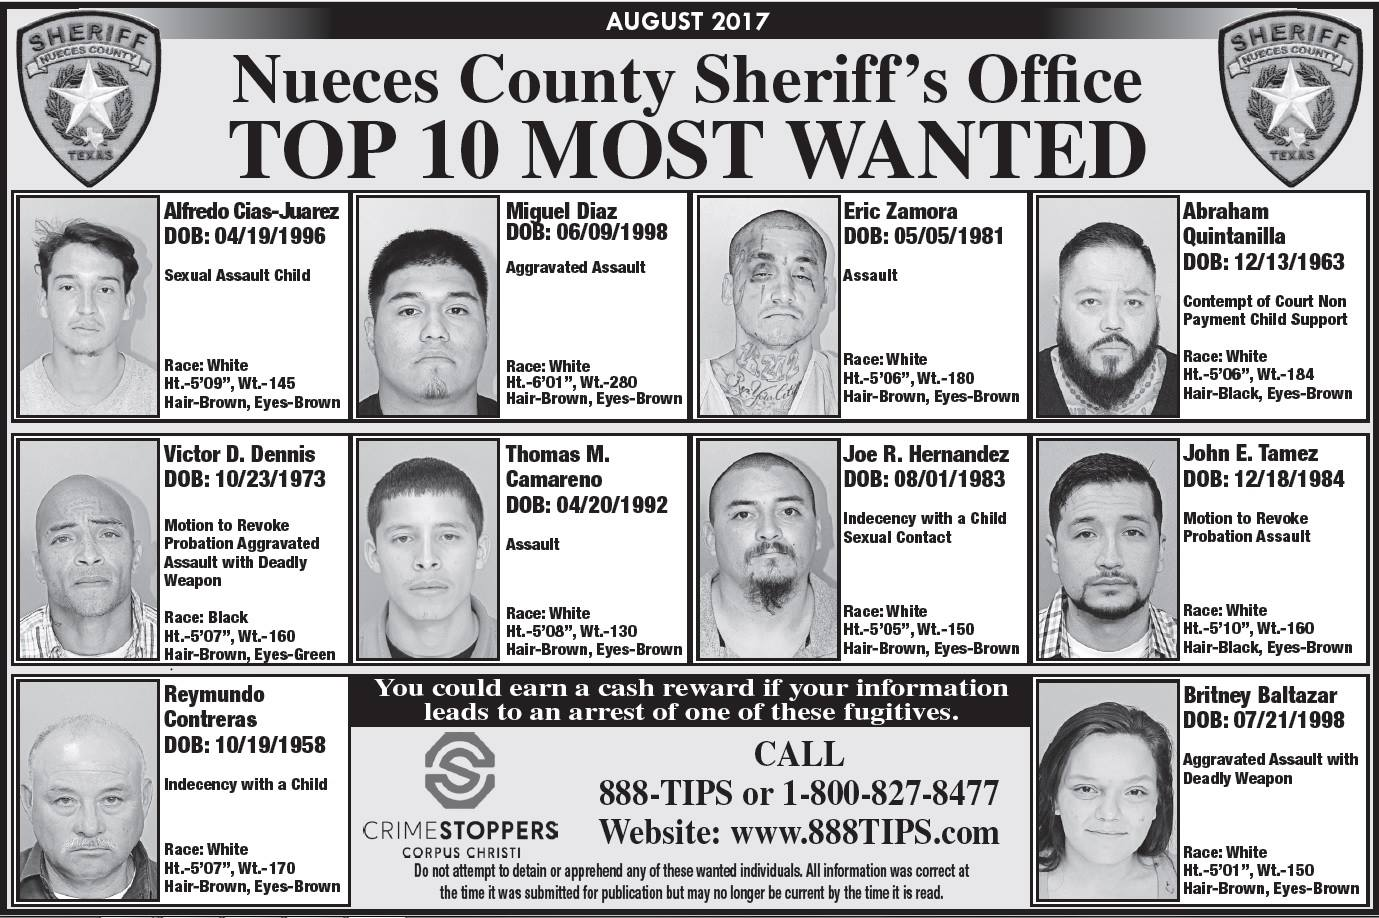 (Photo courtesy of Nueces County Sheriff's Office)